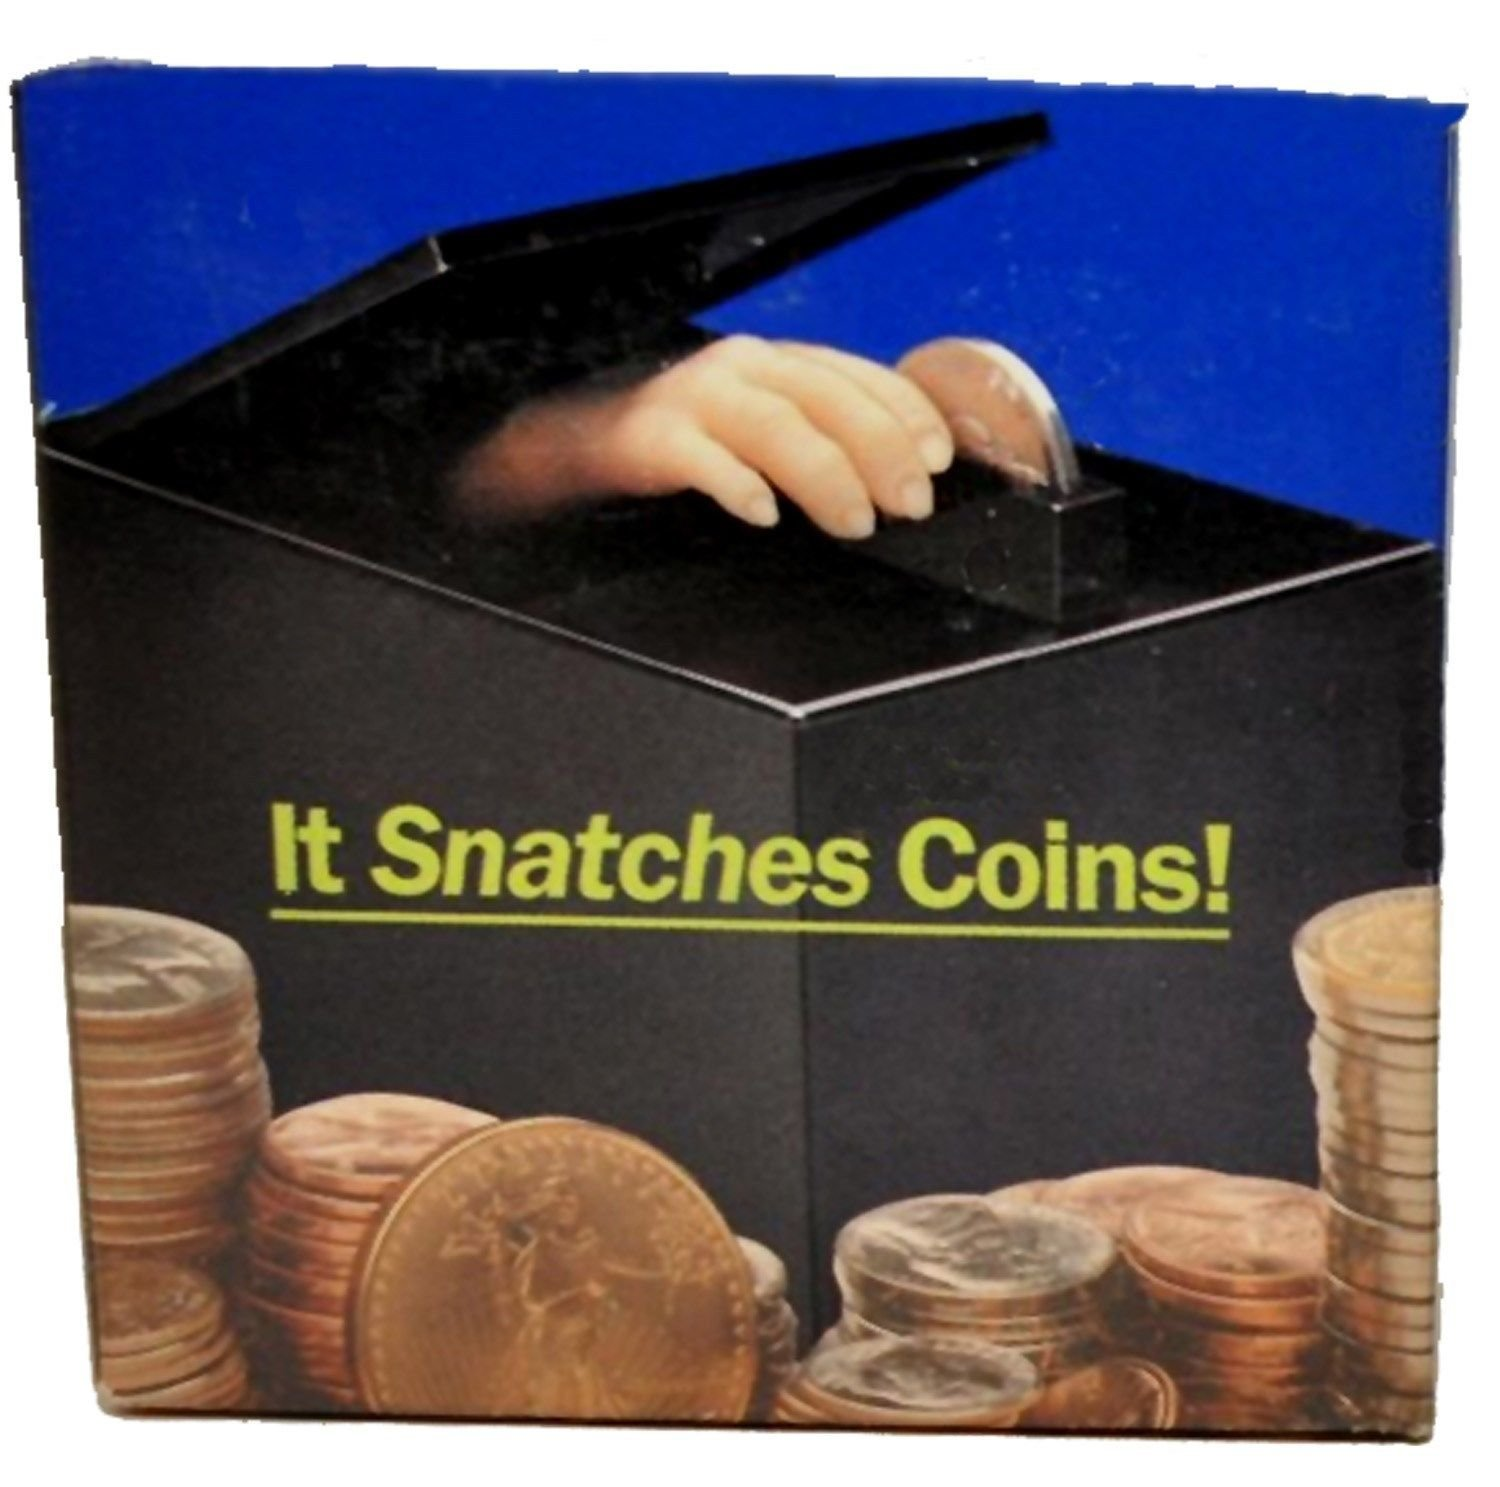 Retro Animated Coin Bank Thing Magic Hand Black Box Money Trap Collectible Toy by Rocky's Rocket by Rocky's Rocket (Image #3)